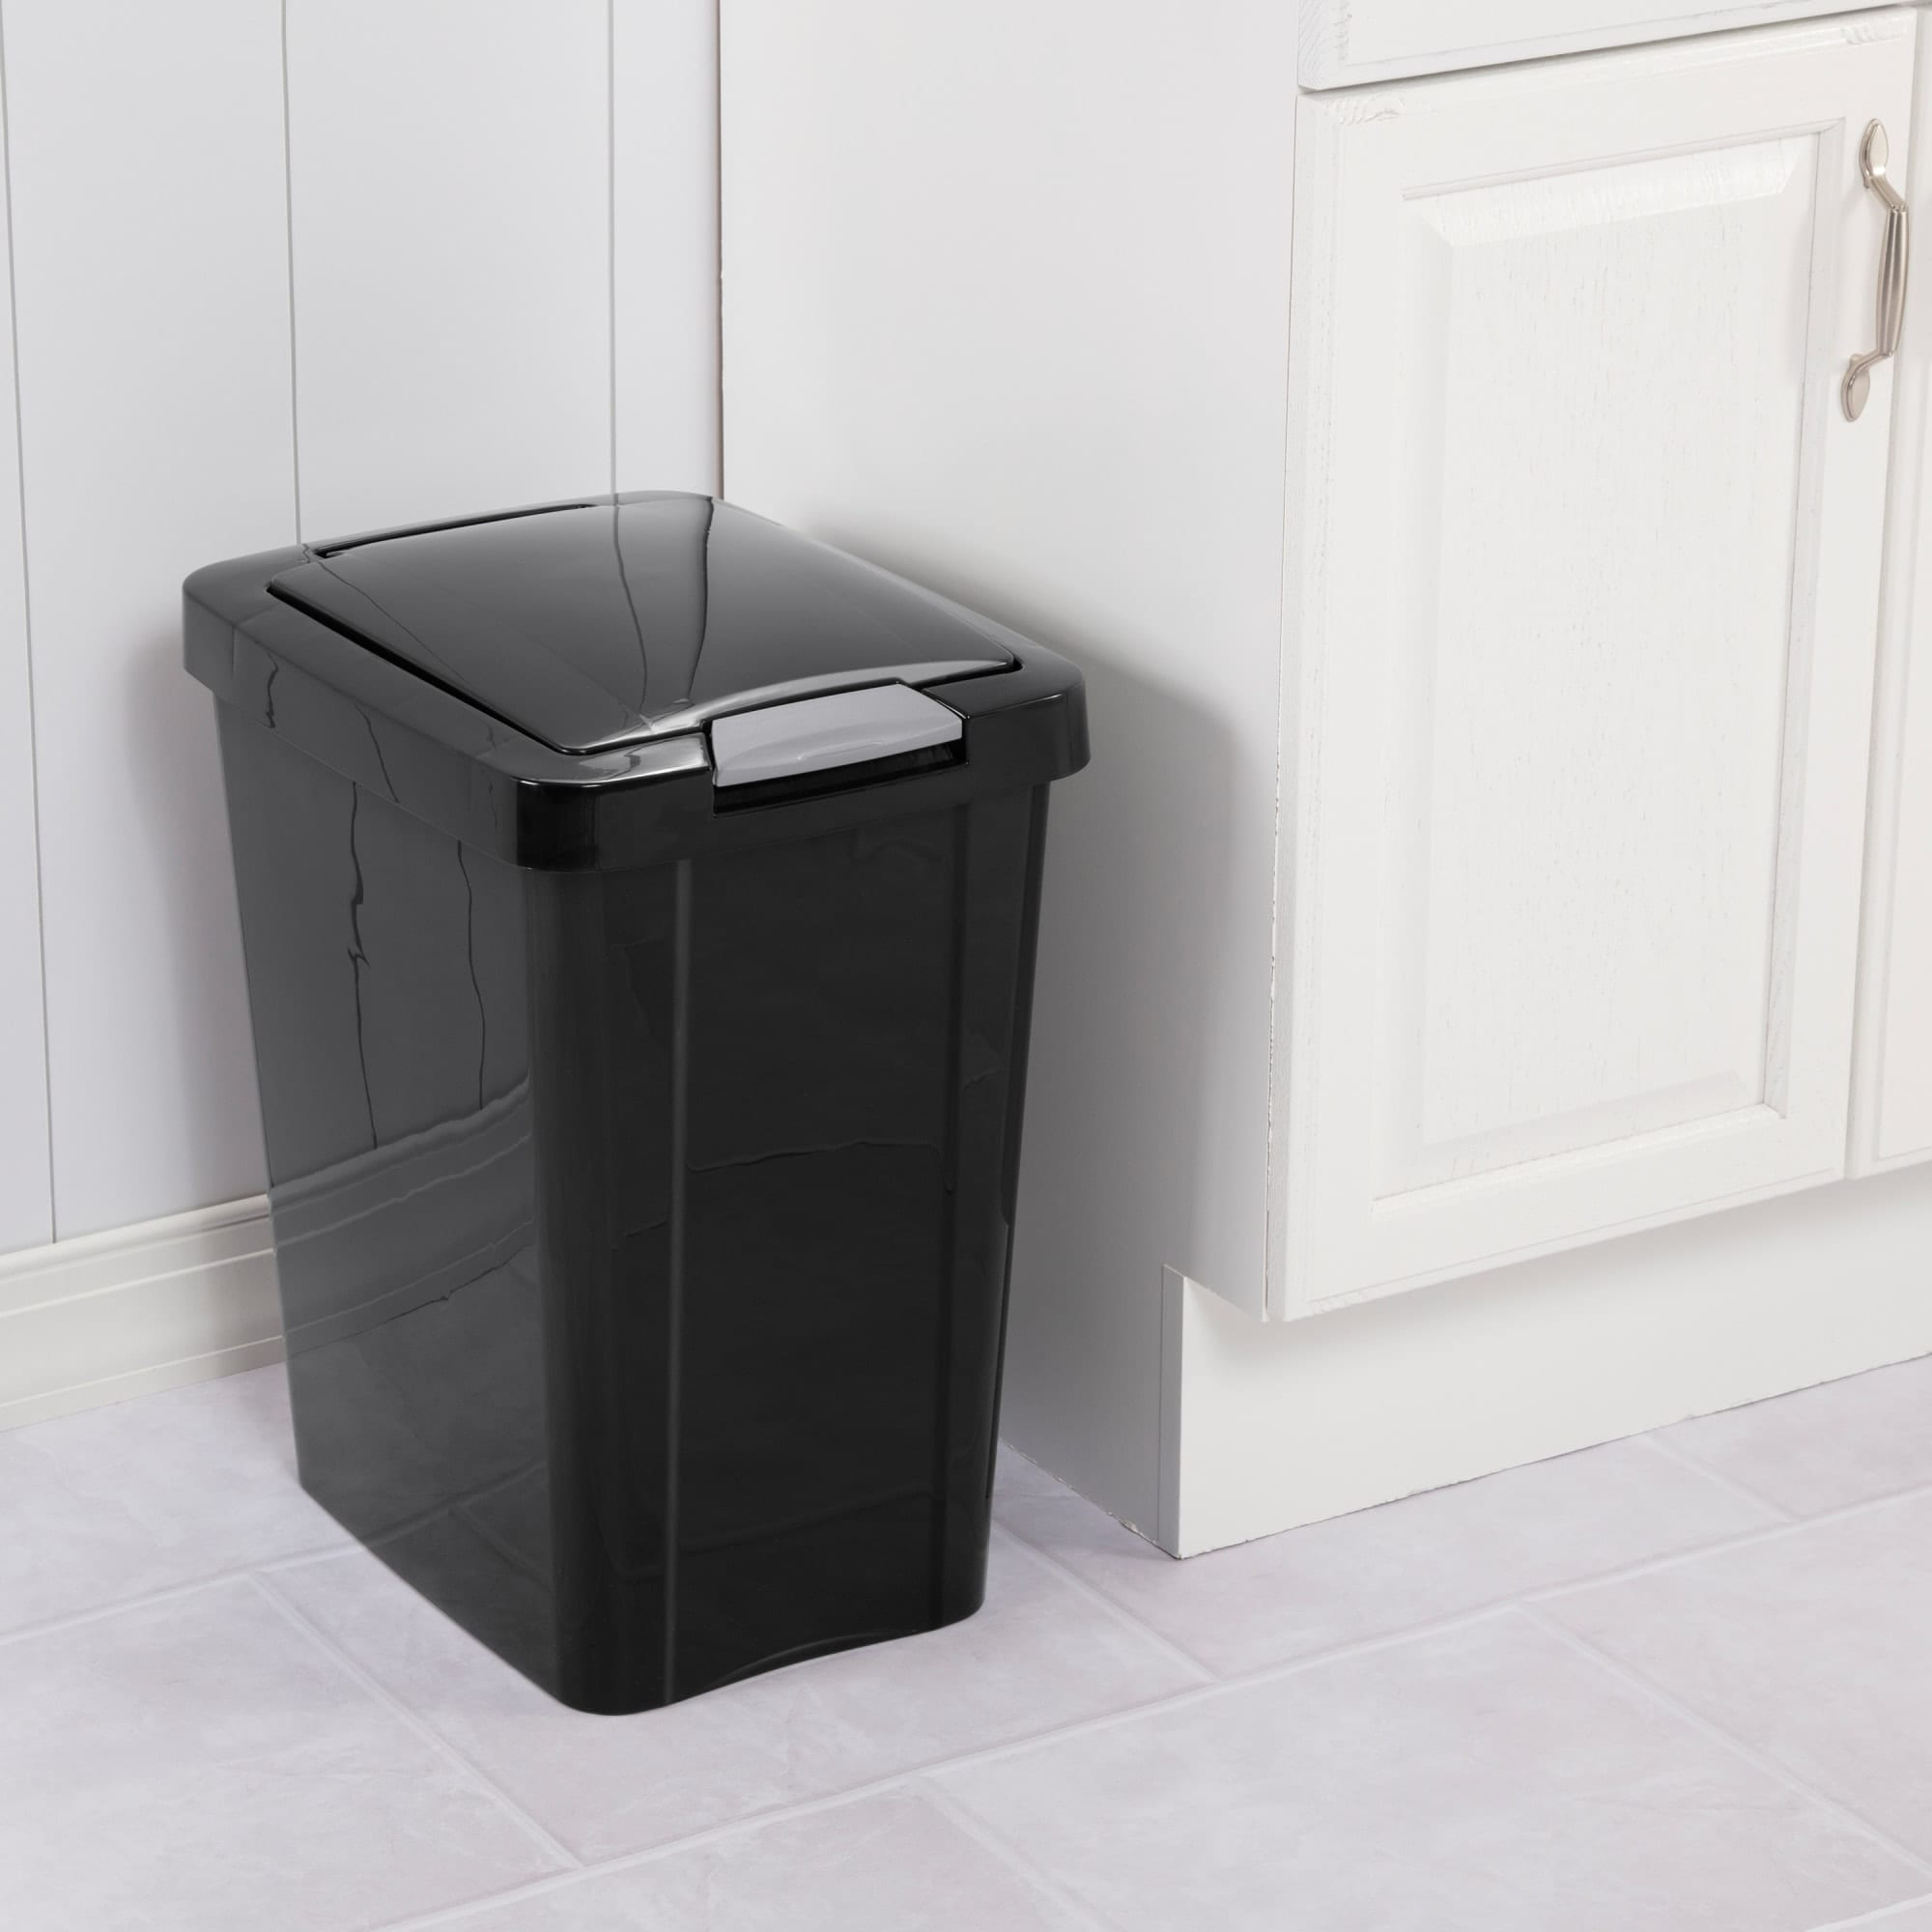 Sterilite  7.5 Gallon / 28 Liter TouchTop™ Wastebasket Black